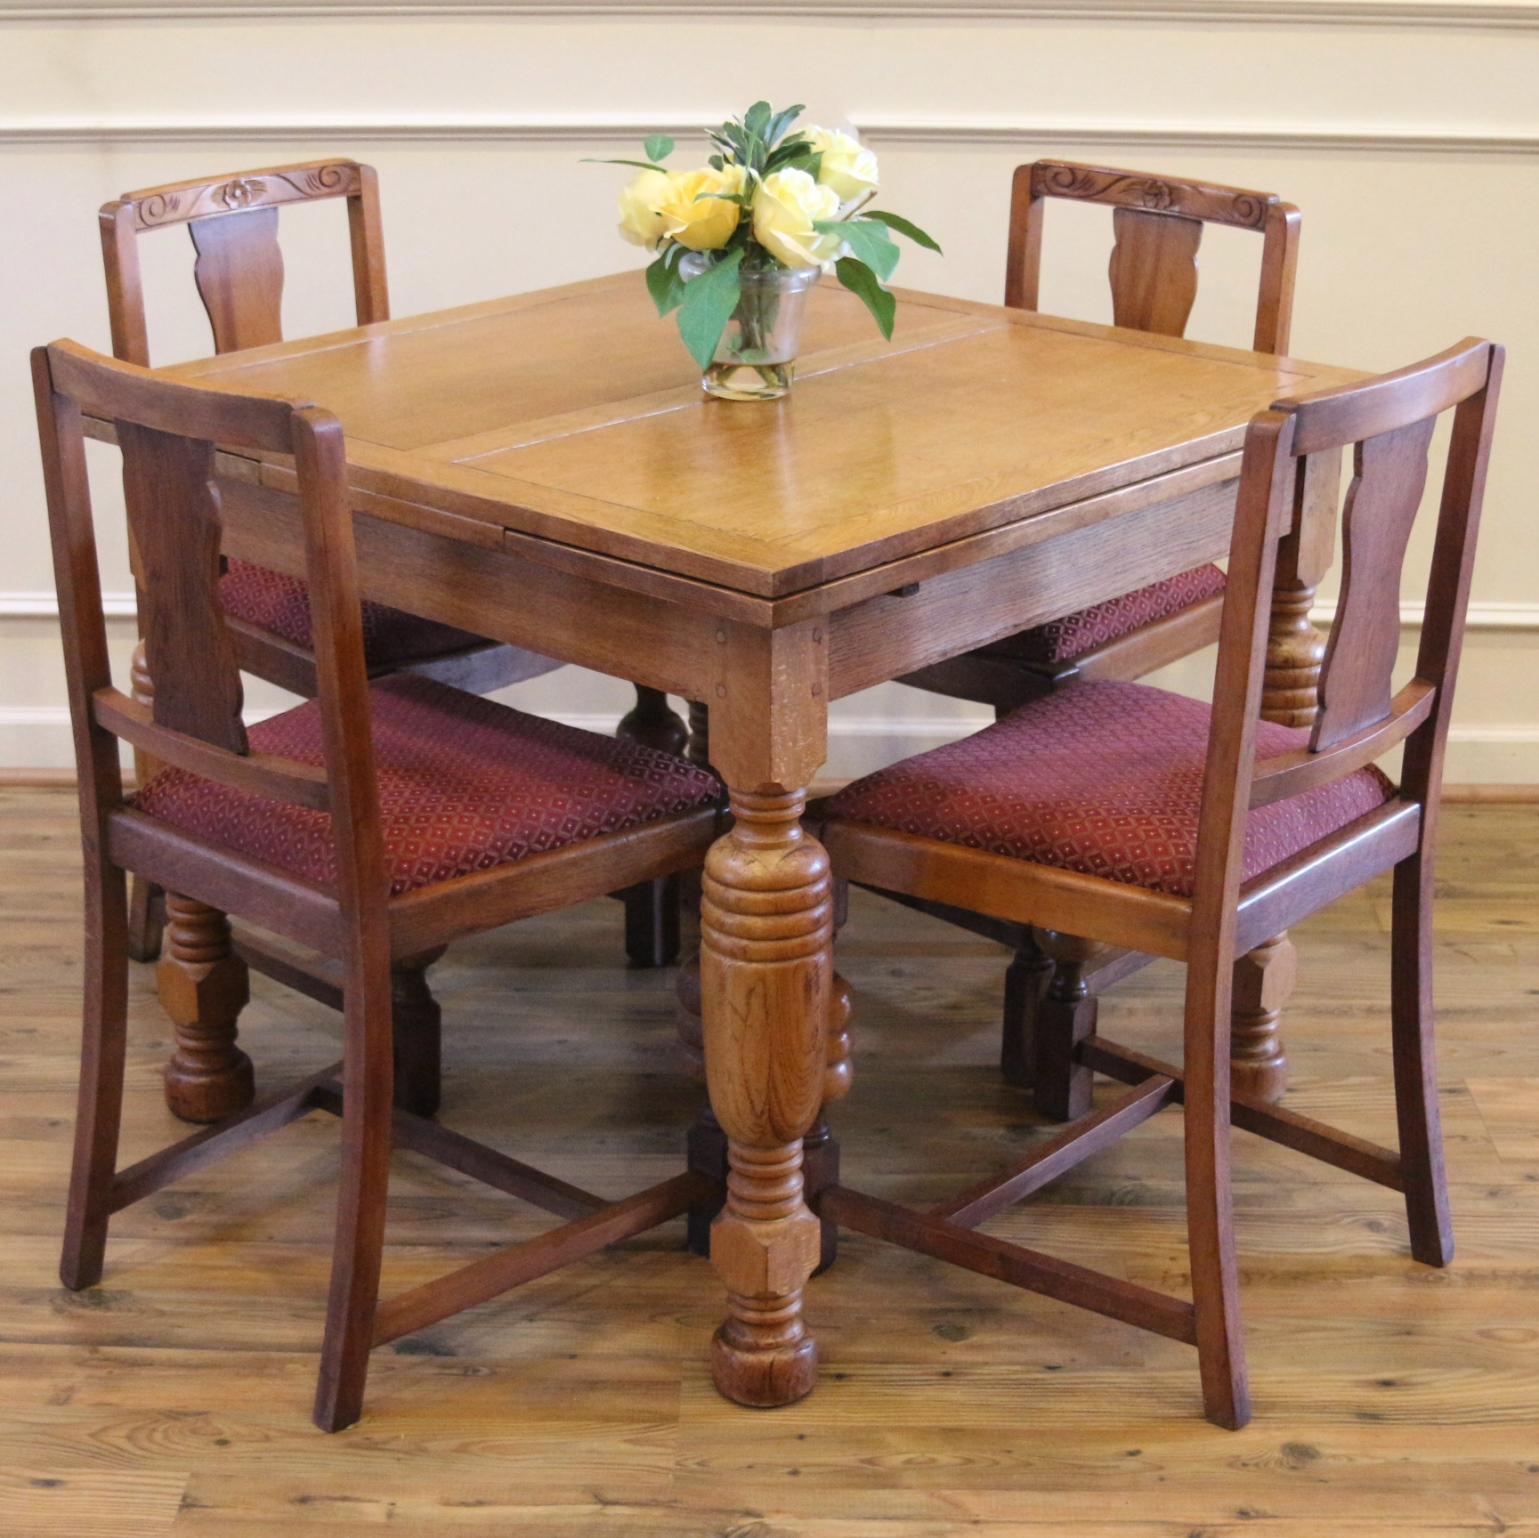 Antique English Oak Pub Table And 4 Chairs Dining Set For